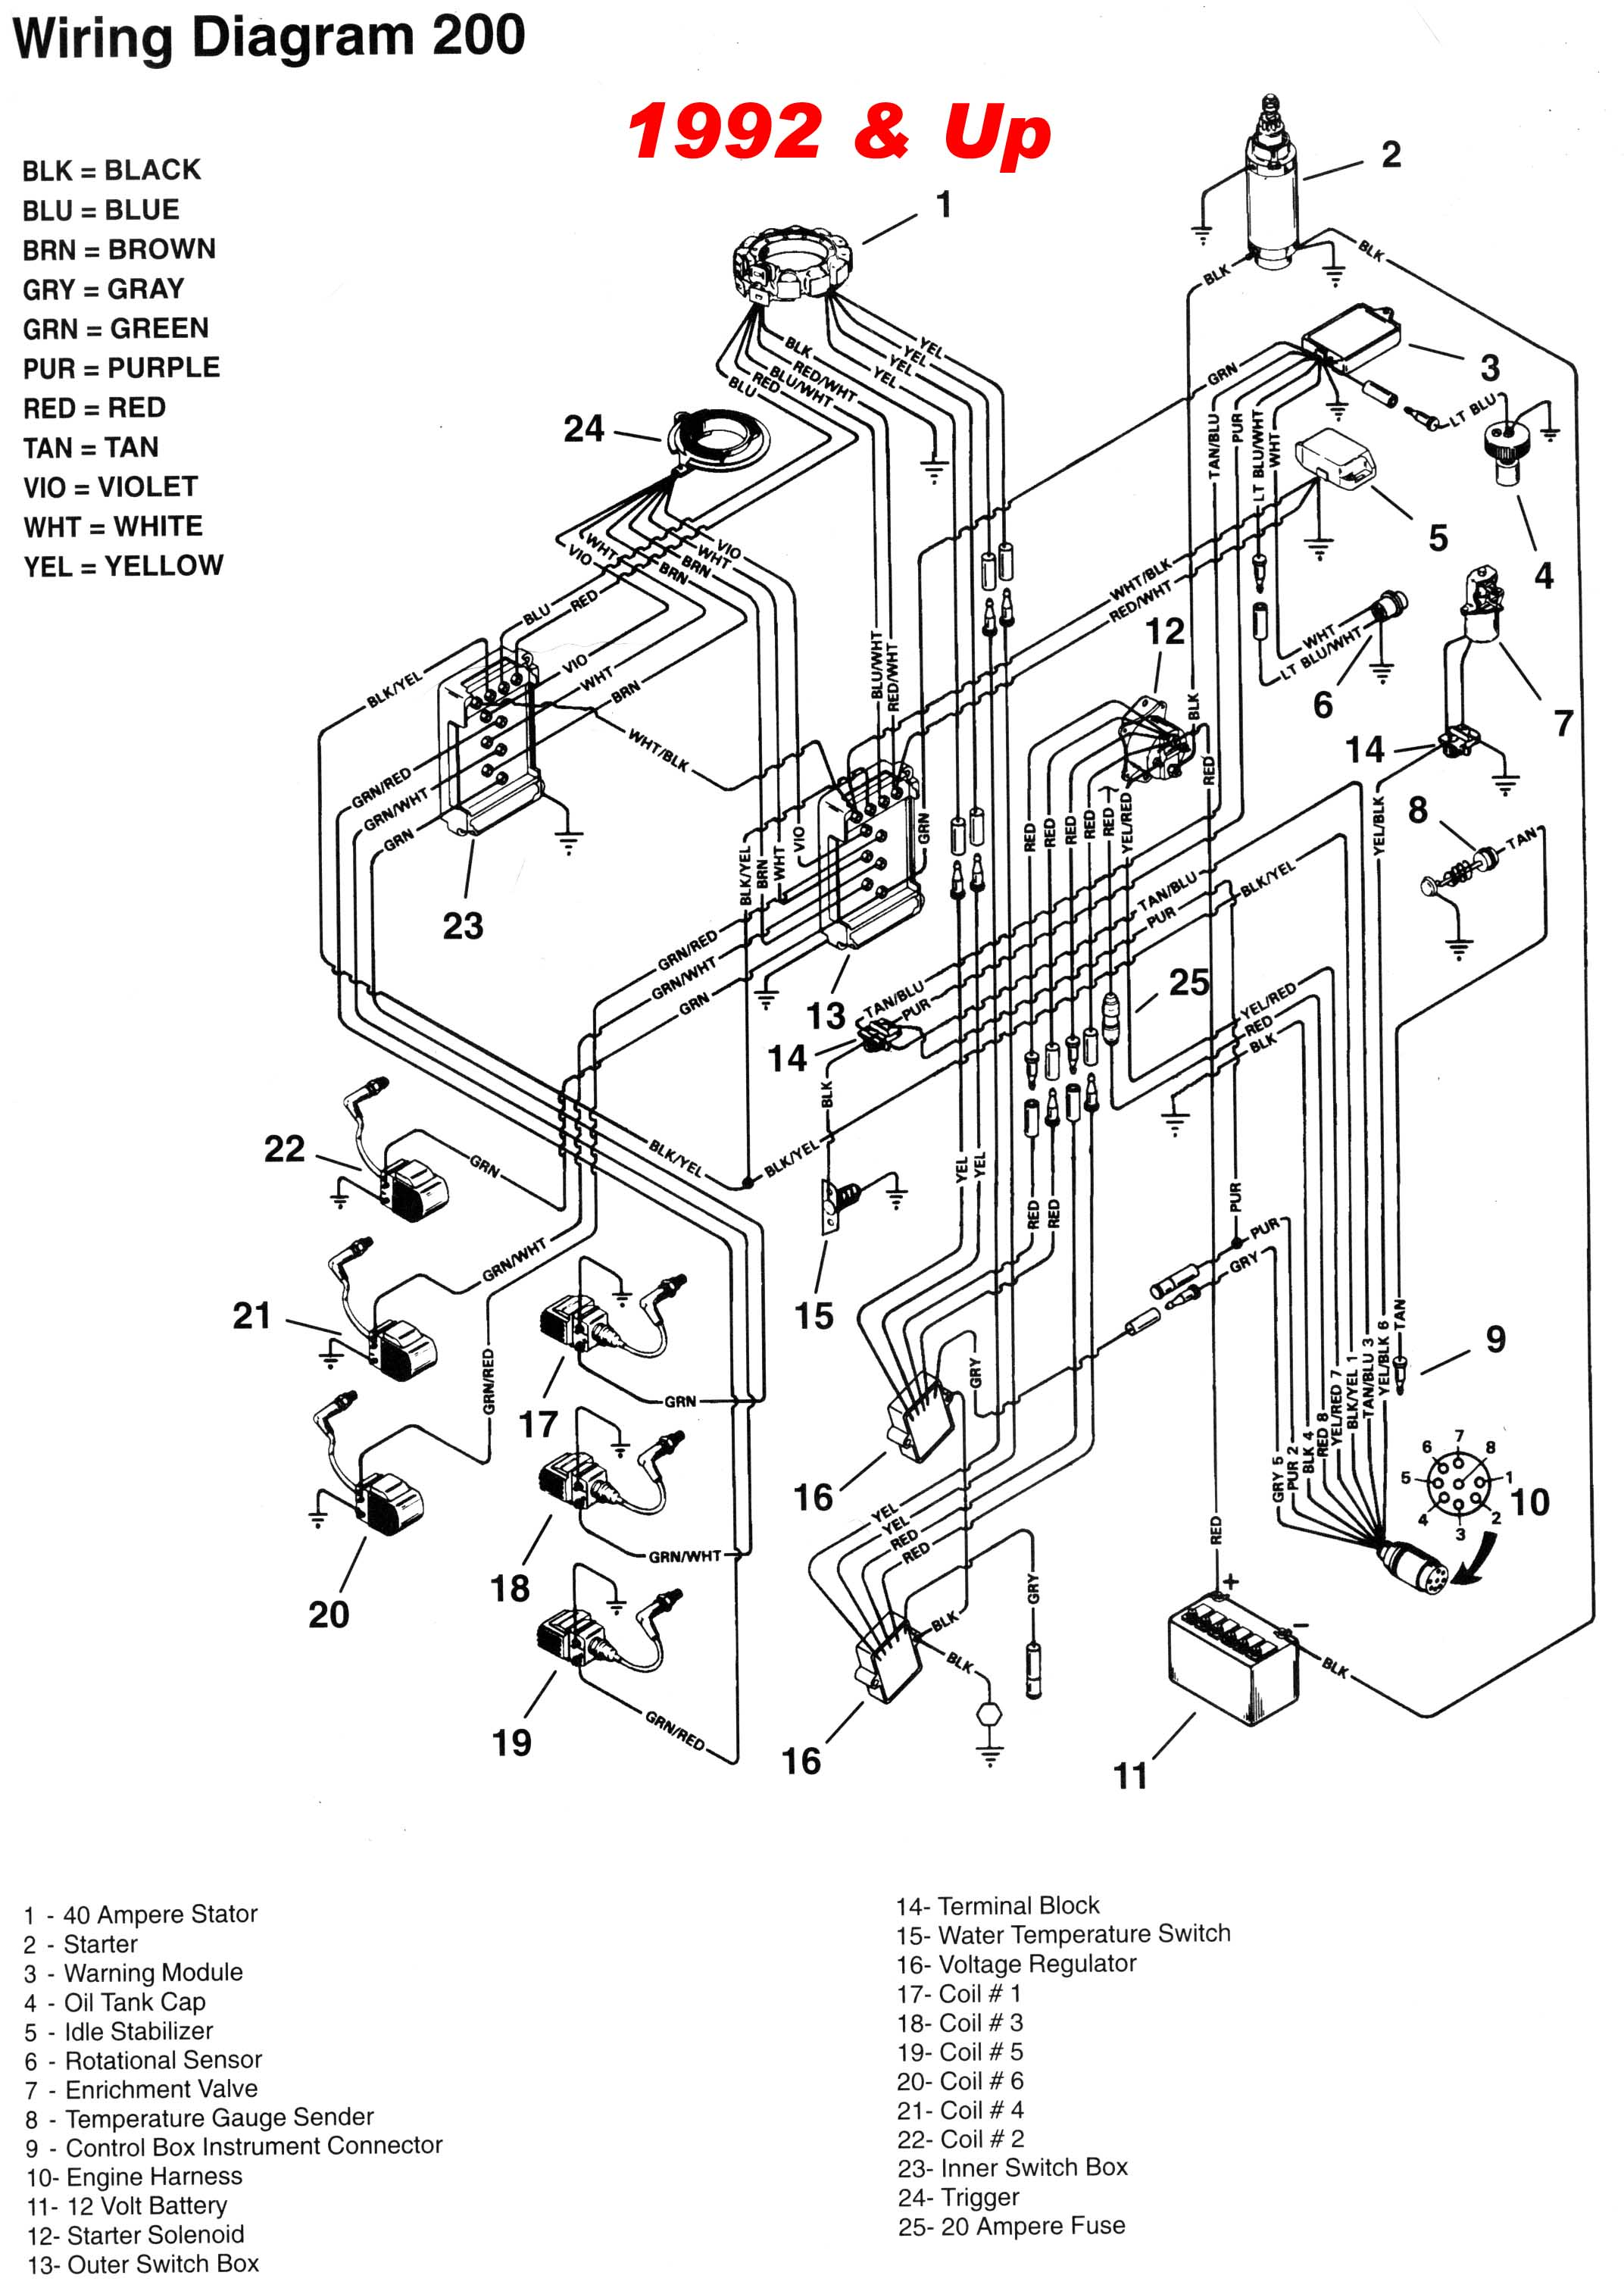 1987 Jeep Yj 4 2l Vacuum Diagram besides PP6i 16788 furthermore Miller Bobcat Fuel Gauge Wiring Diagram additionally RepairGuideContent as well Astra Power Steering Pump Wiring Diagram. on in tank electric fuel pump wiring diagram